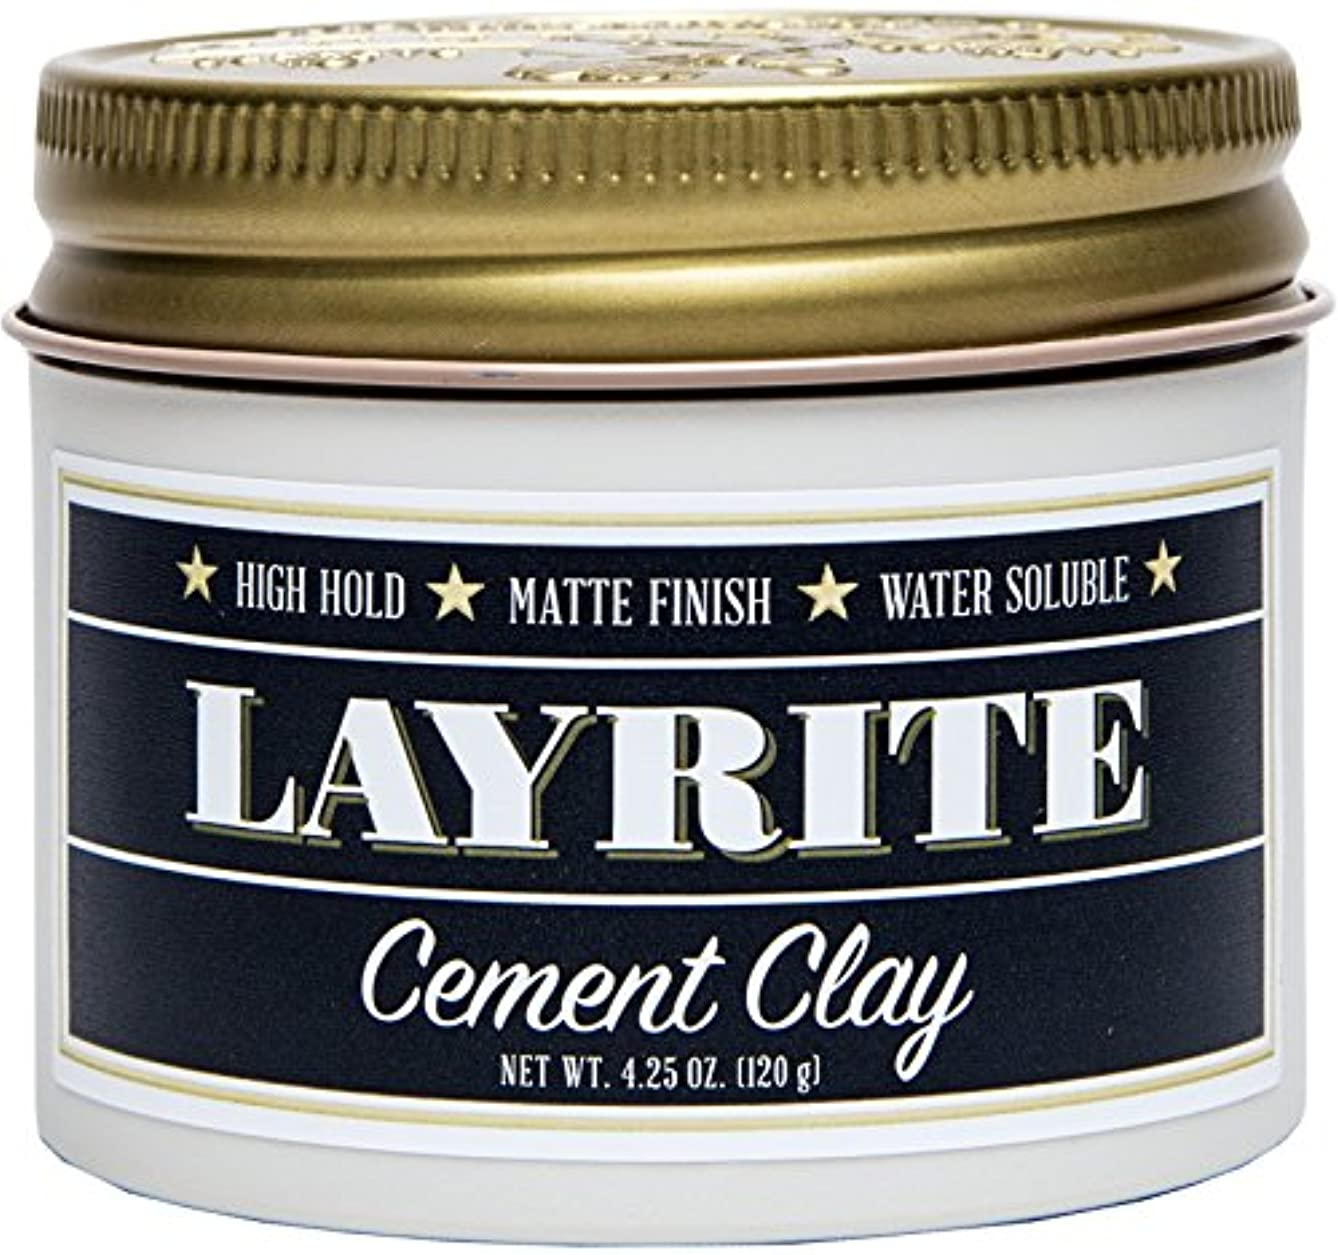 Layrite Cement Clay, 4.25 oz. b874582833206835